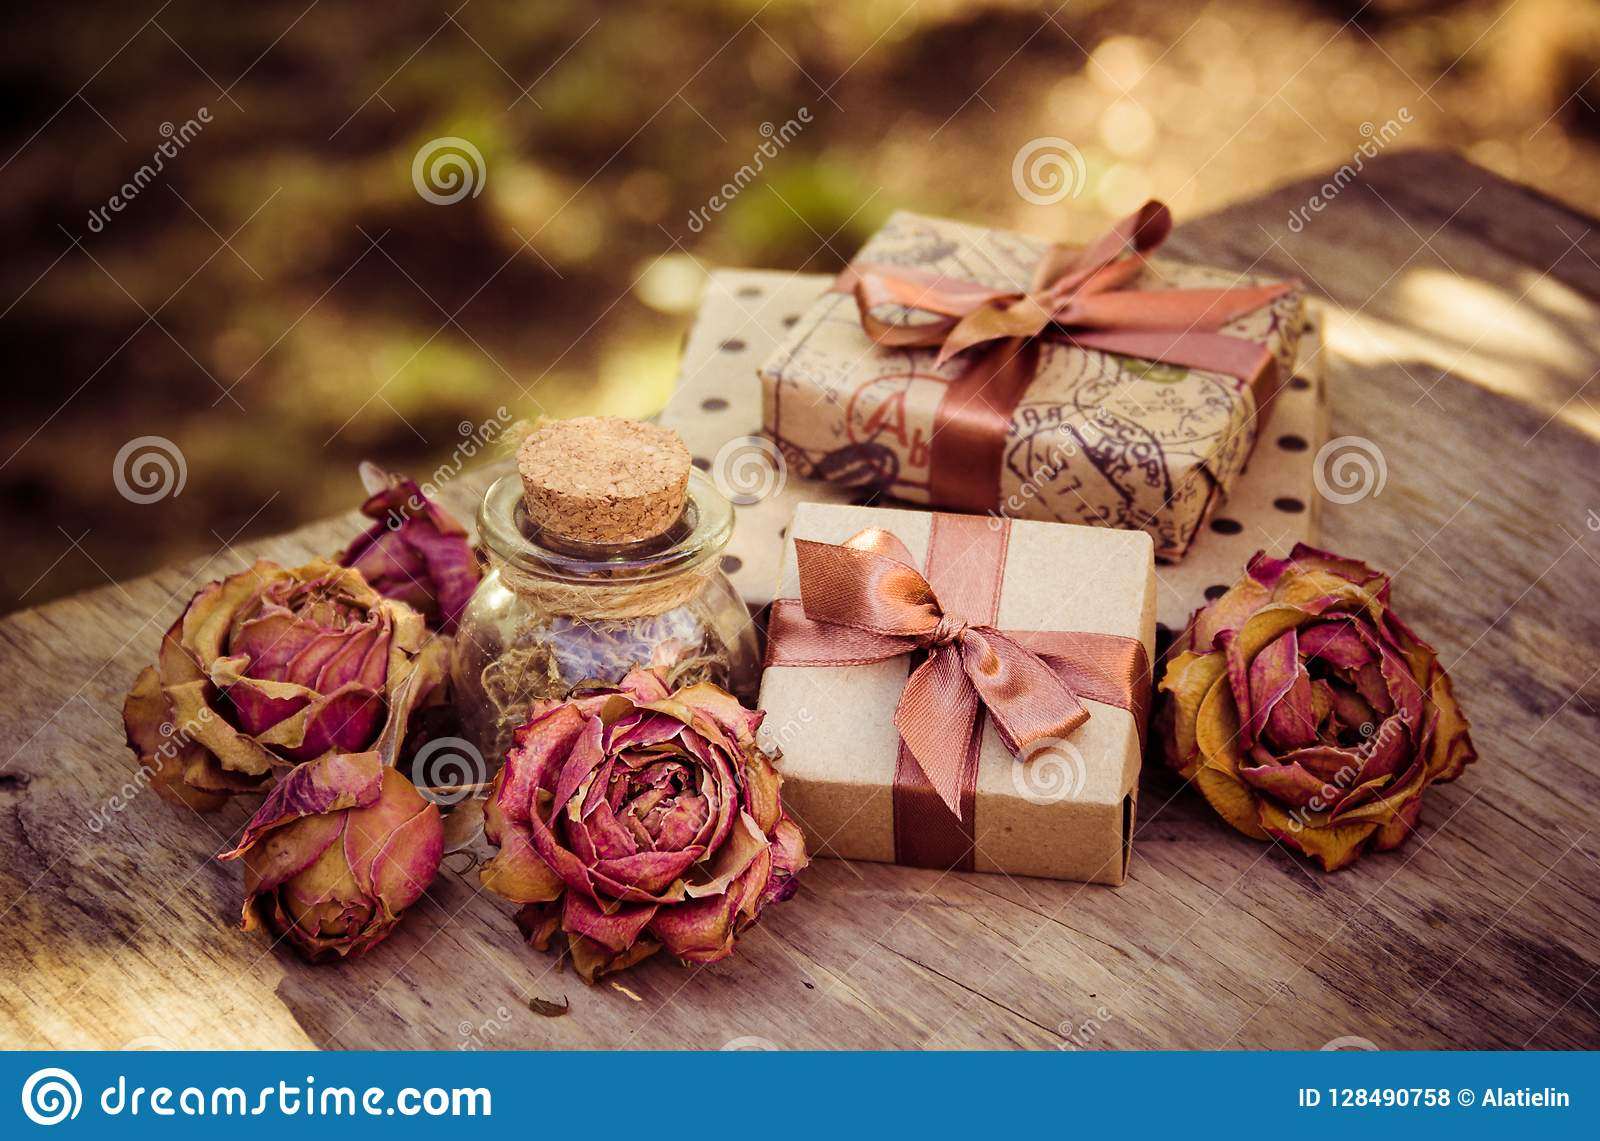 Gift Boxes And Dry Roses Dried Flowers And Craft Gift Box Romantic